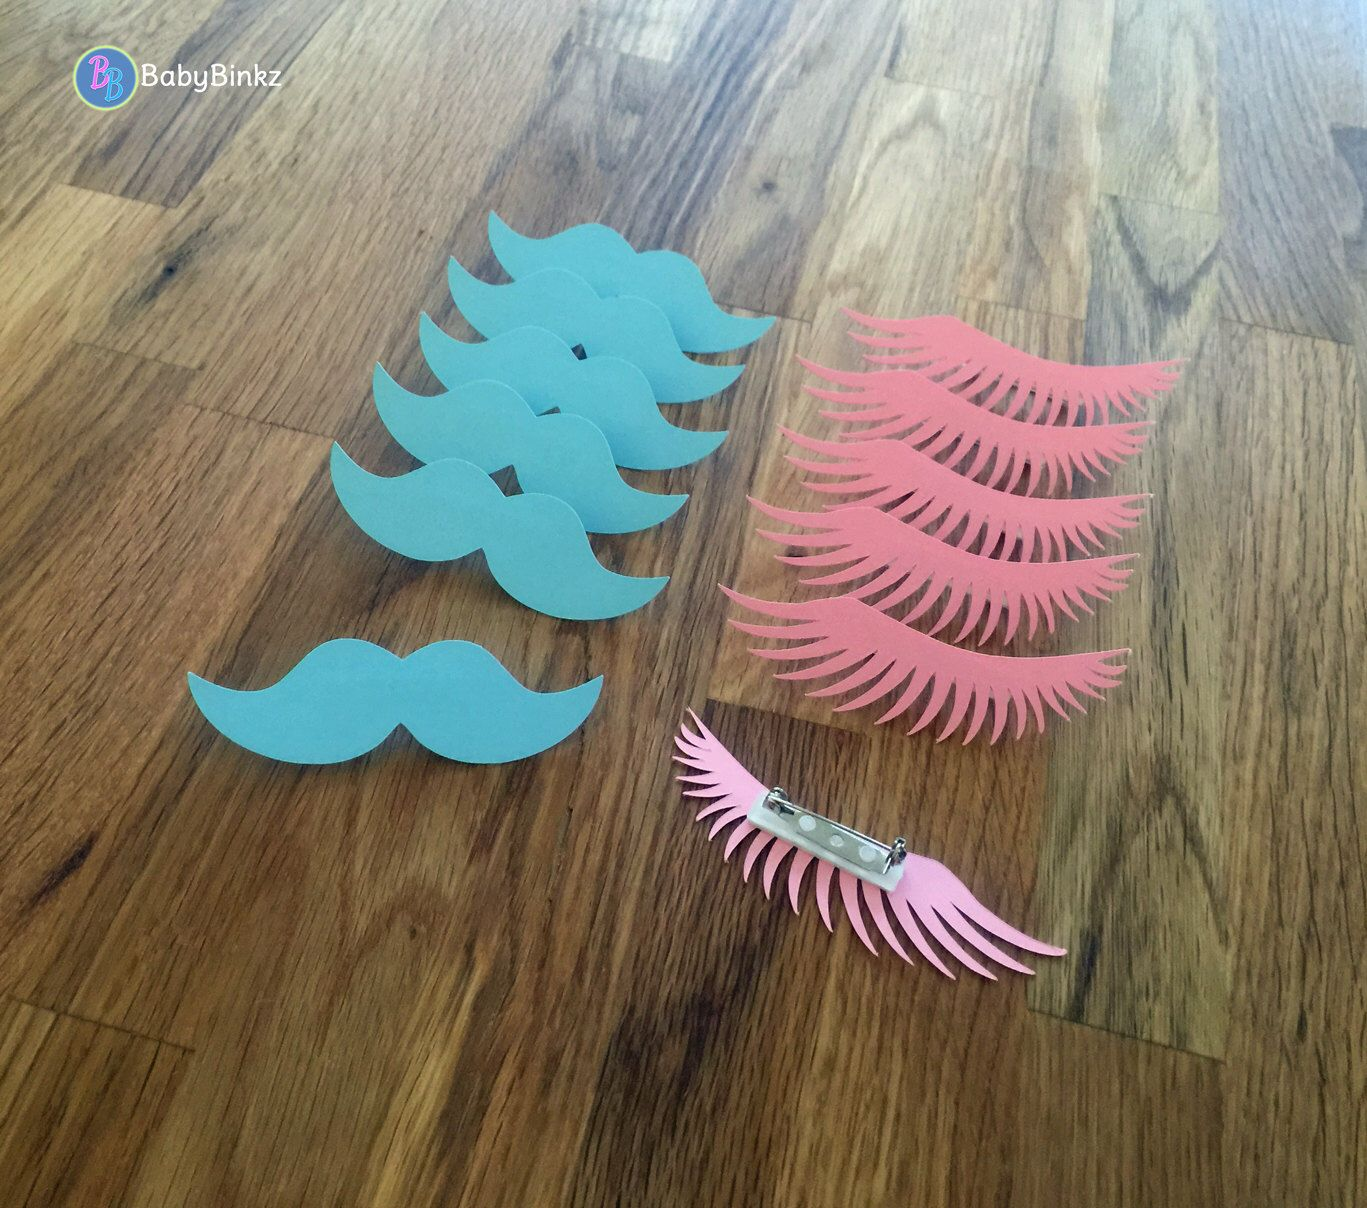 party pins staches or lashes gender reveal baby shower die cut pink girl eyelashes - Gender Reveal Baby Shower